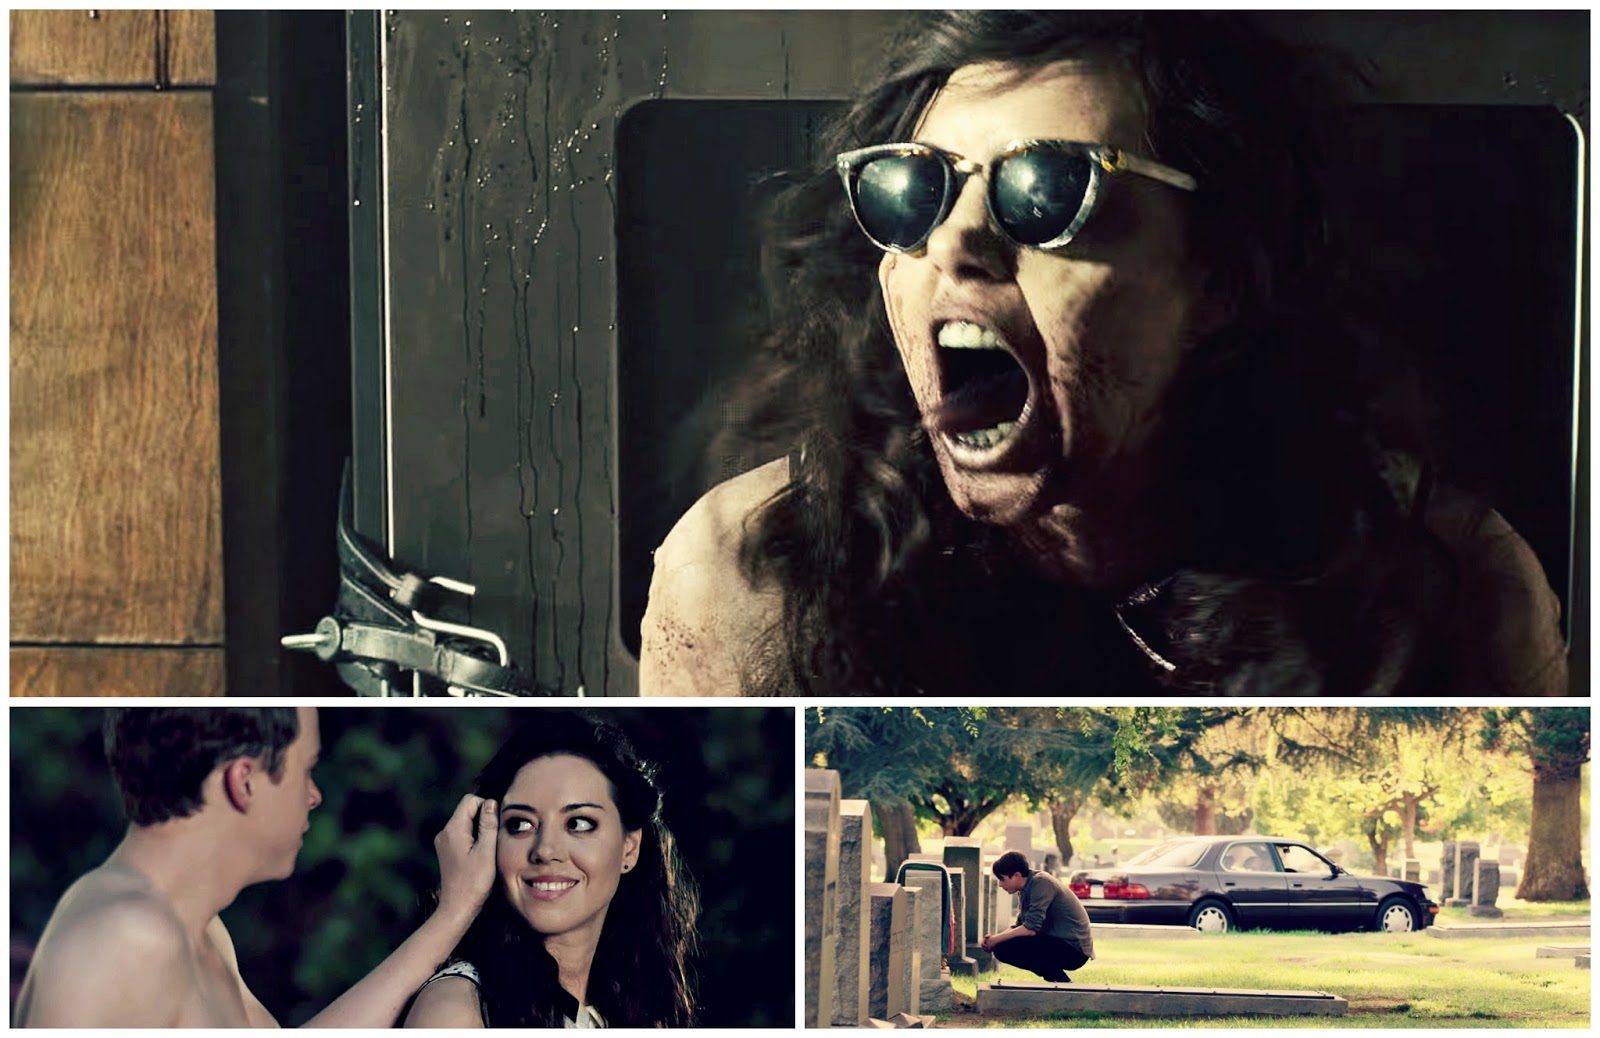 Life After Beth 2014 Trailer Doctor Who Episodes Guide Season 8